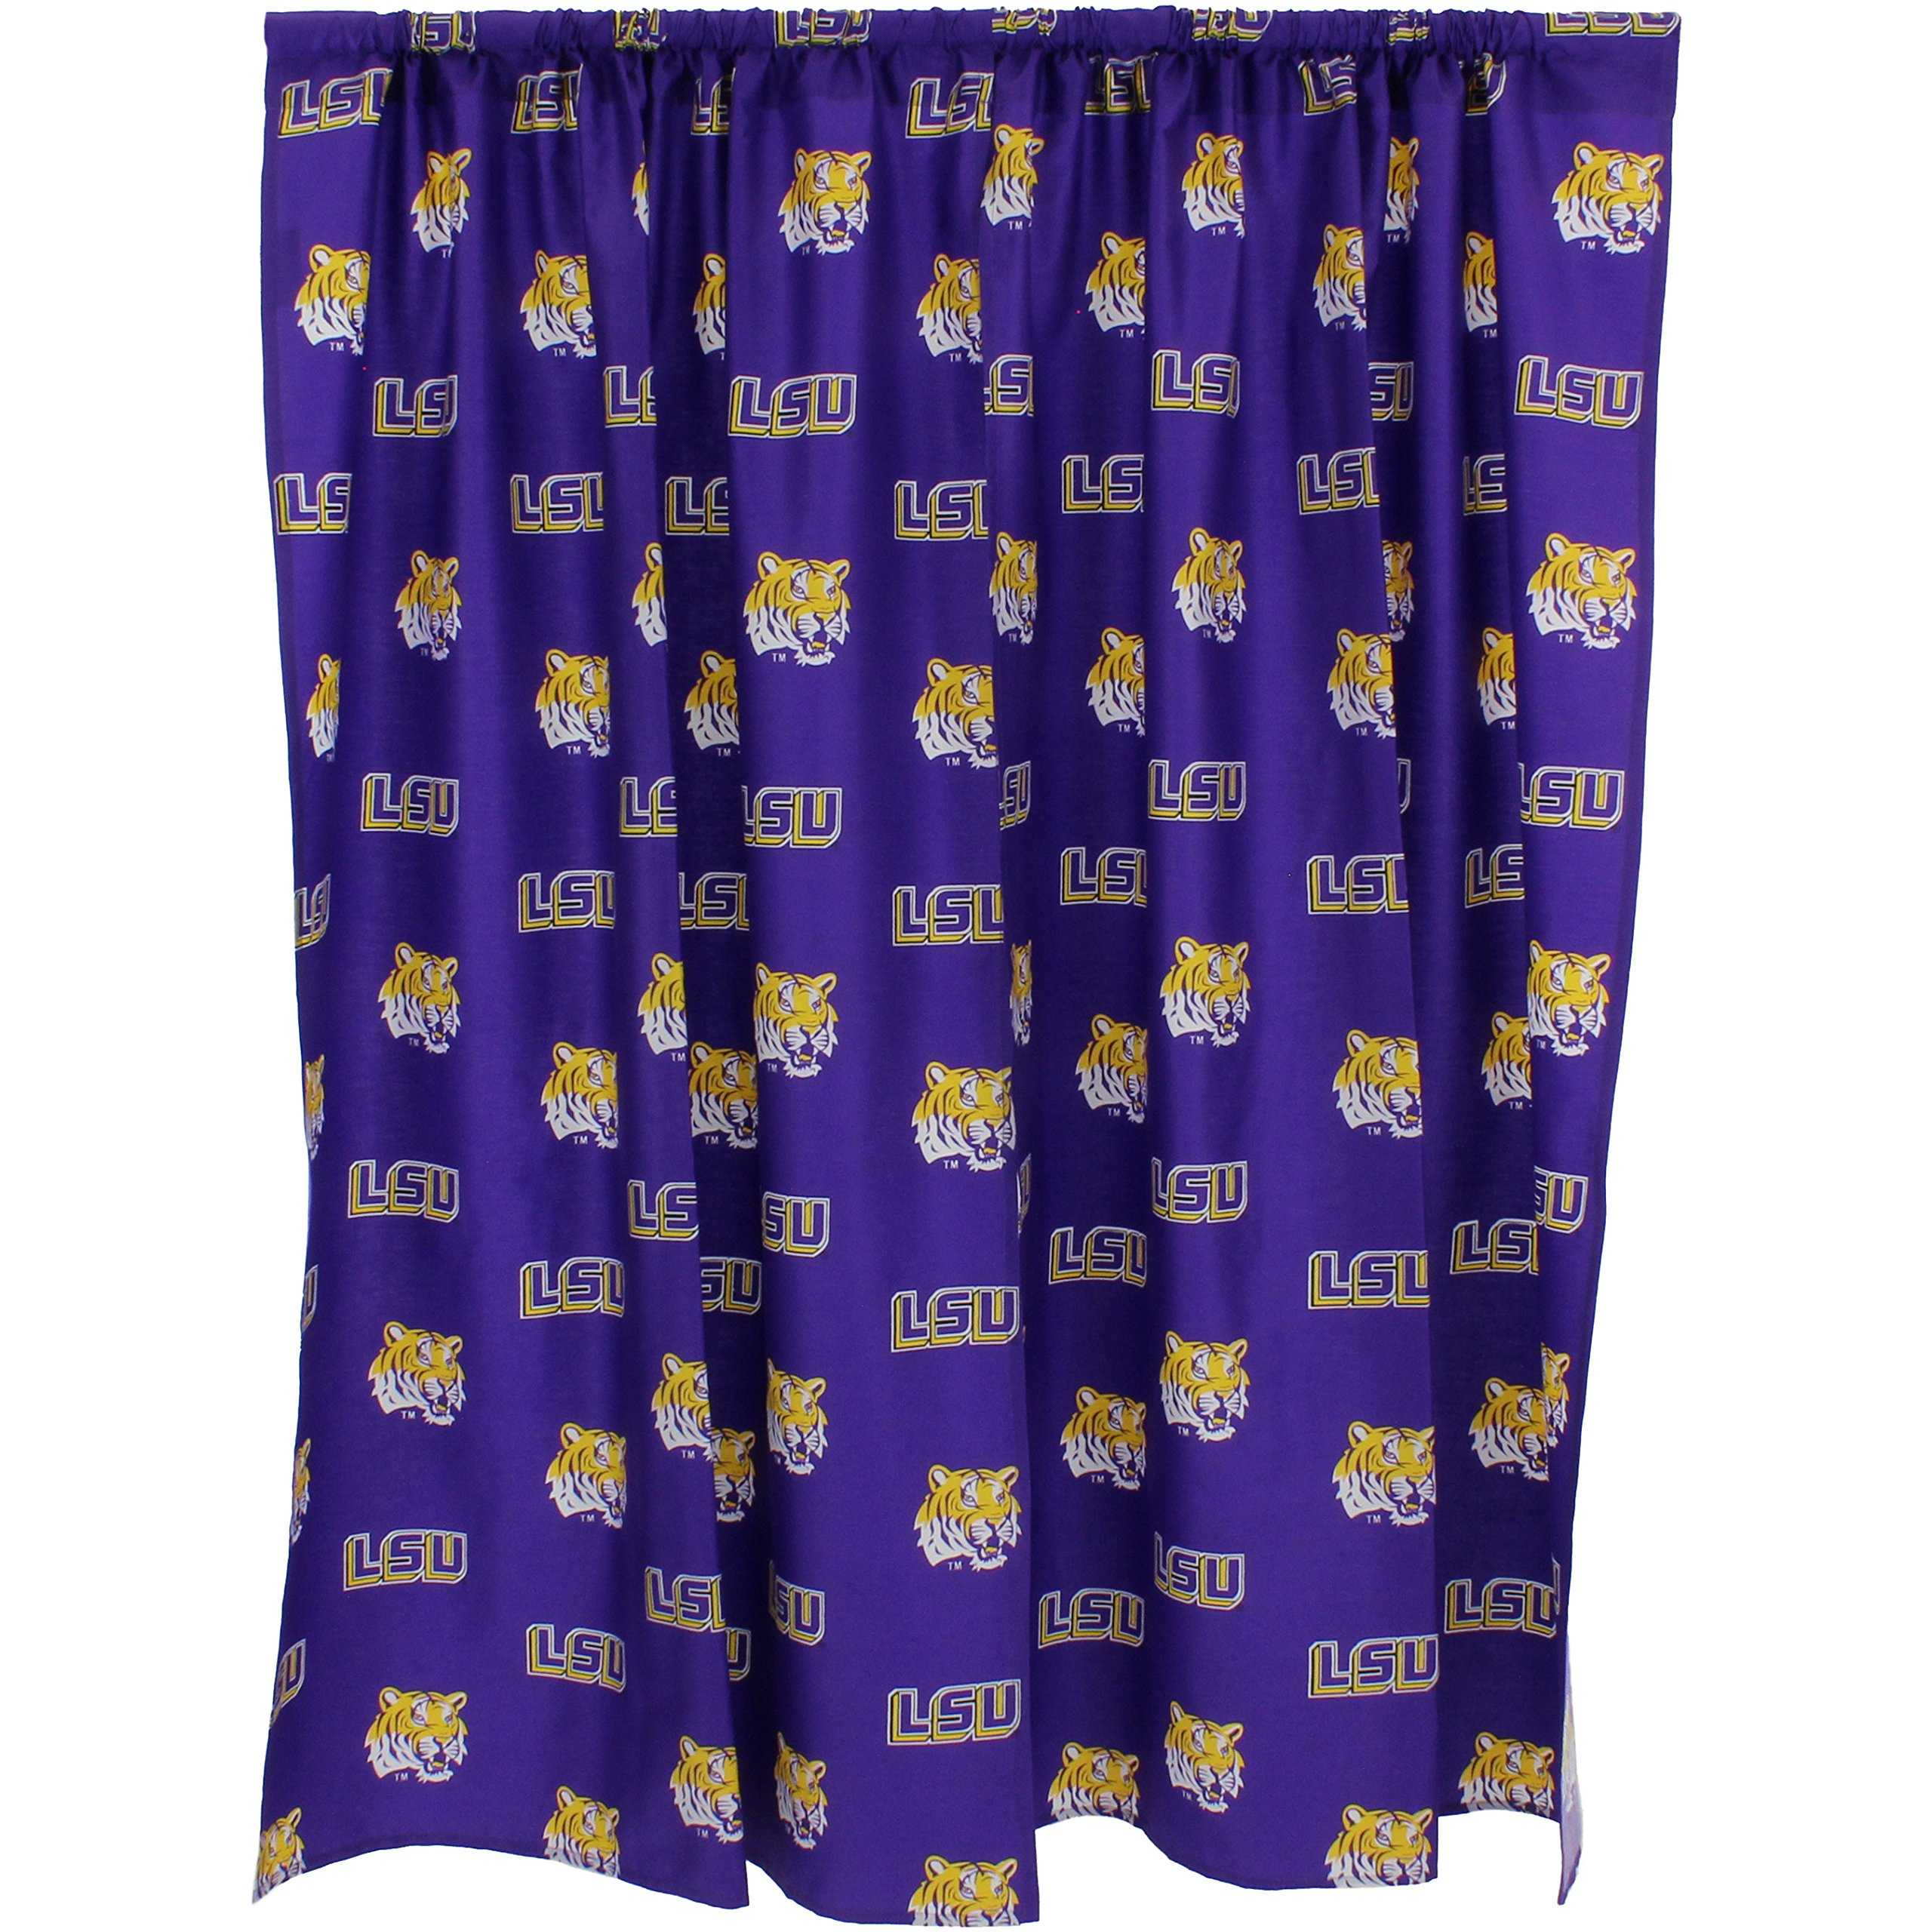 College Covers Louisiana State Tigers Printed Curtain Panels 42'' x 84'' by College Covers (Image #2)